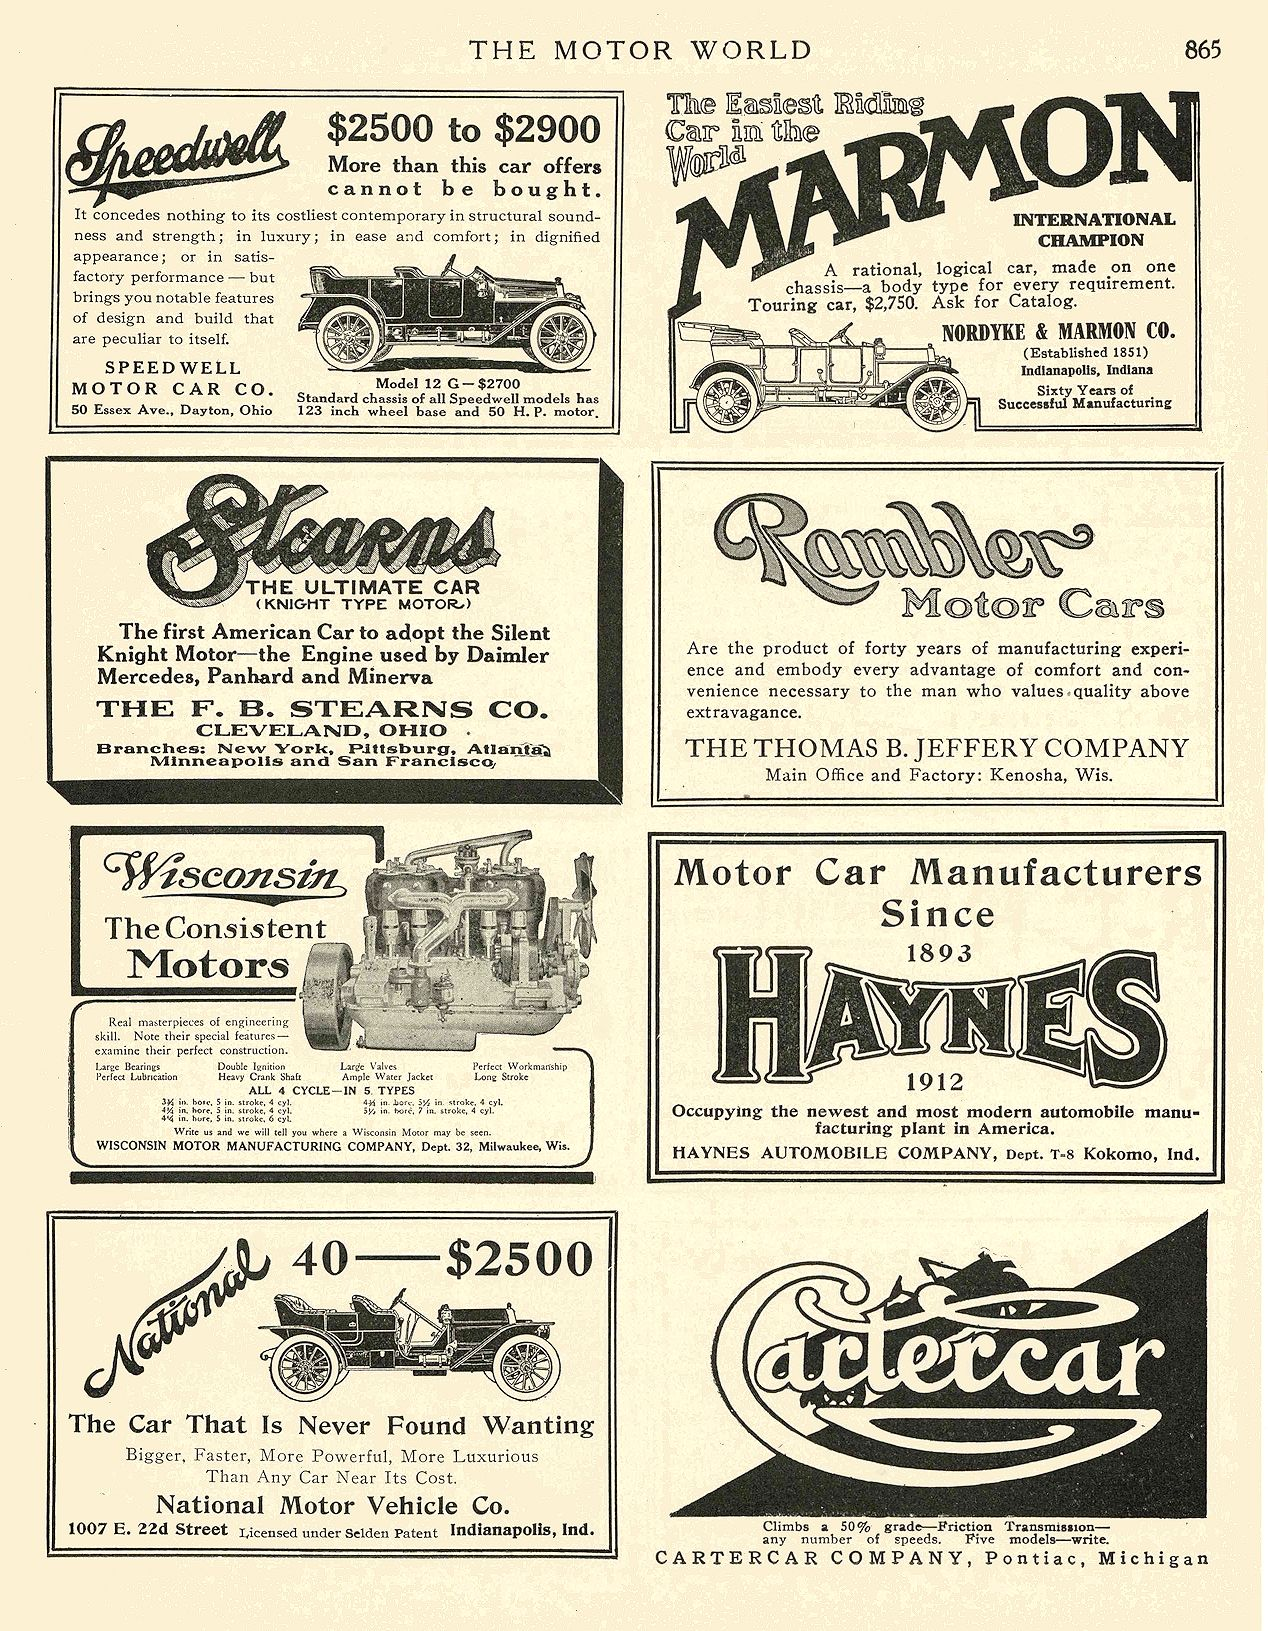 1912 2 15 NATIONAL National 40—–$2500 National Motor Vehicle Co. Indianapolis, IND THE MOTOR WORLD February 15, 1912 8.5″x12″ page 865